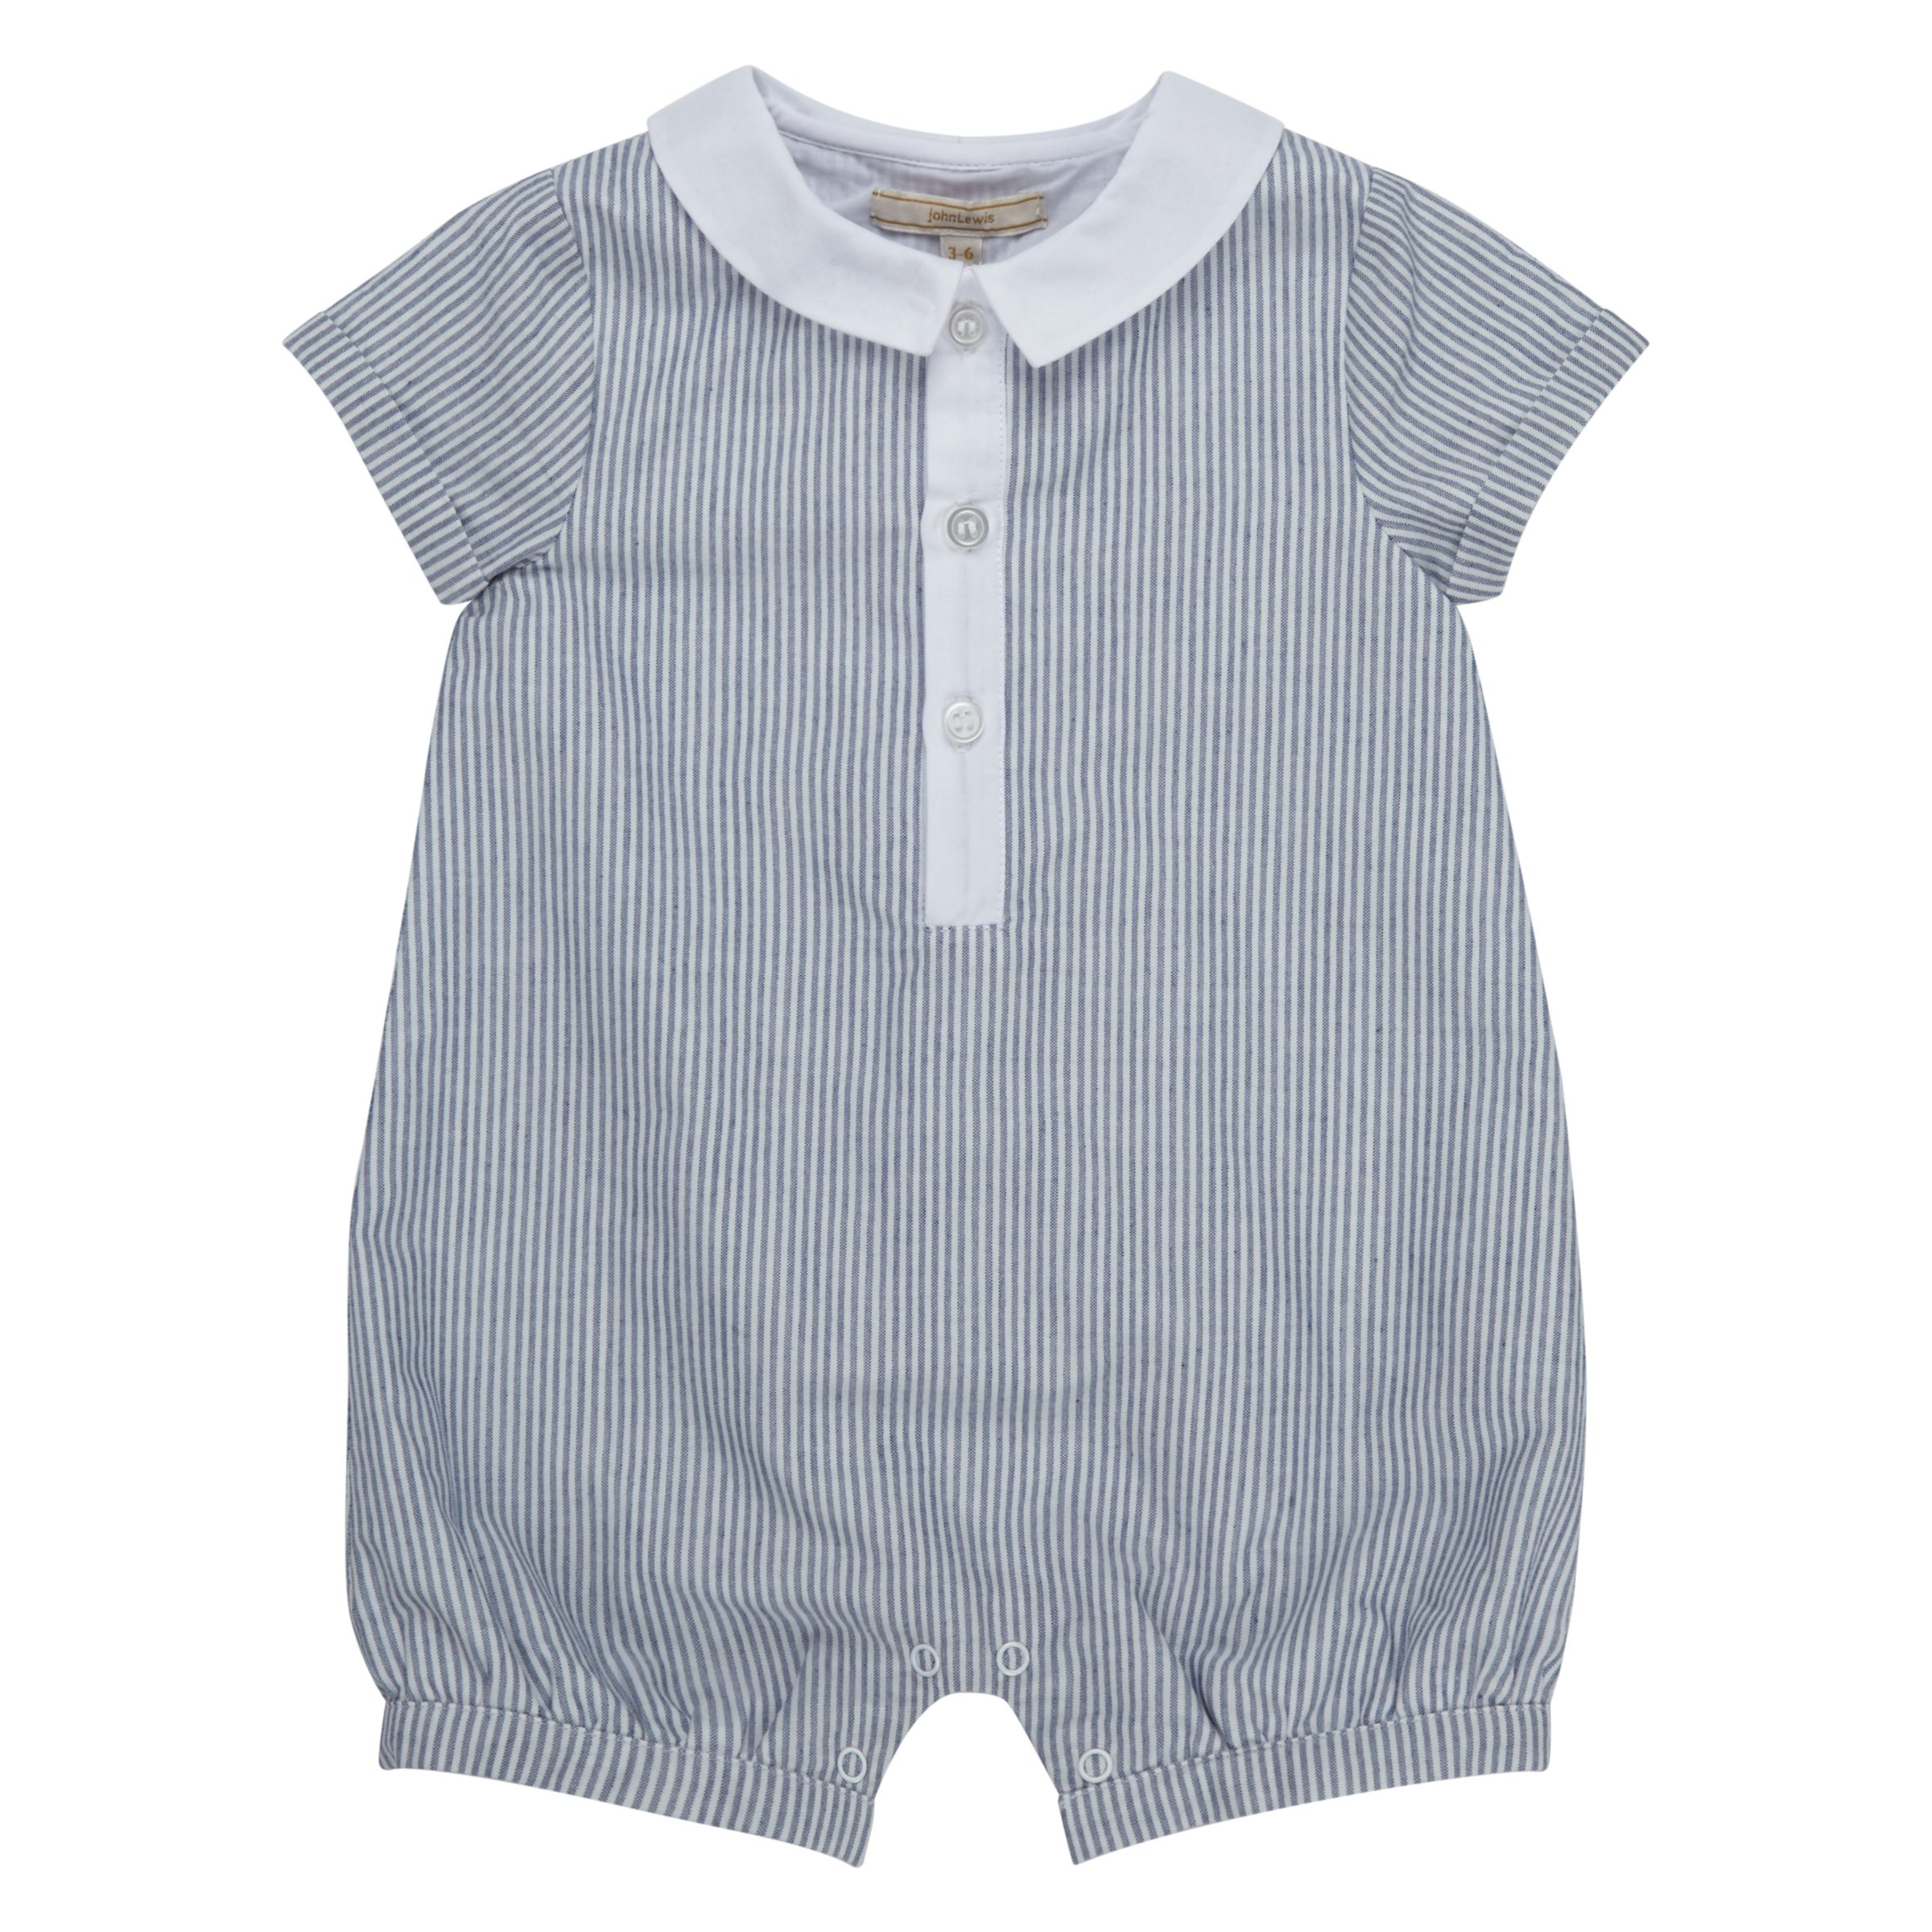 John Lewis Heirloom Collection John Lewis Heirloom Collection Baby Striped Romper, Grey/White